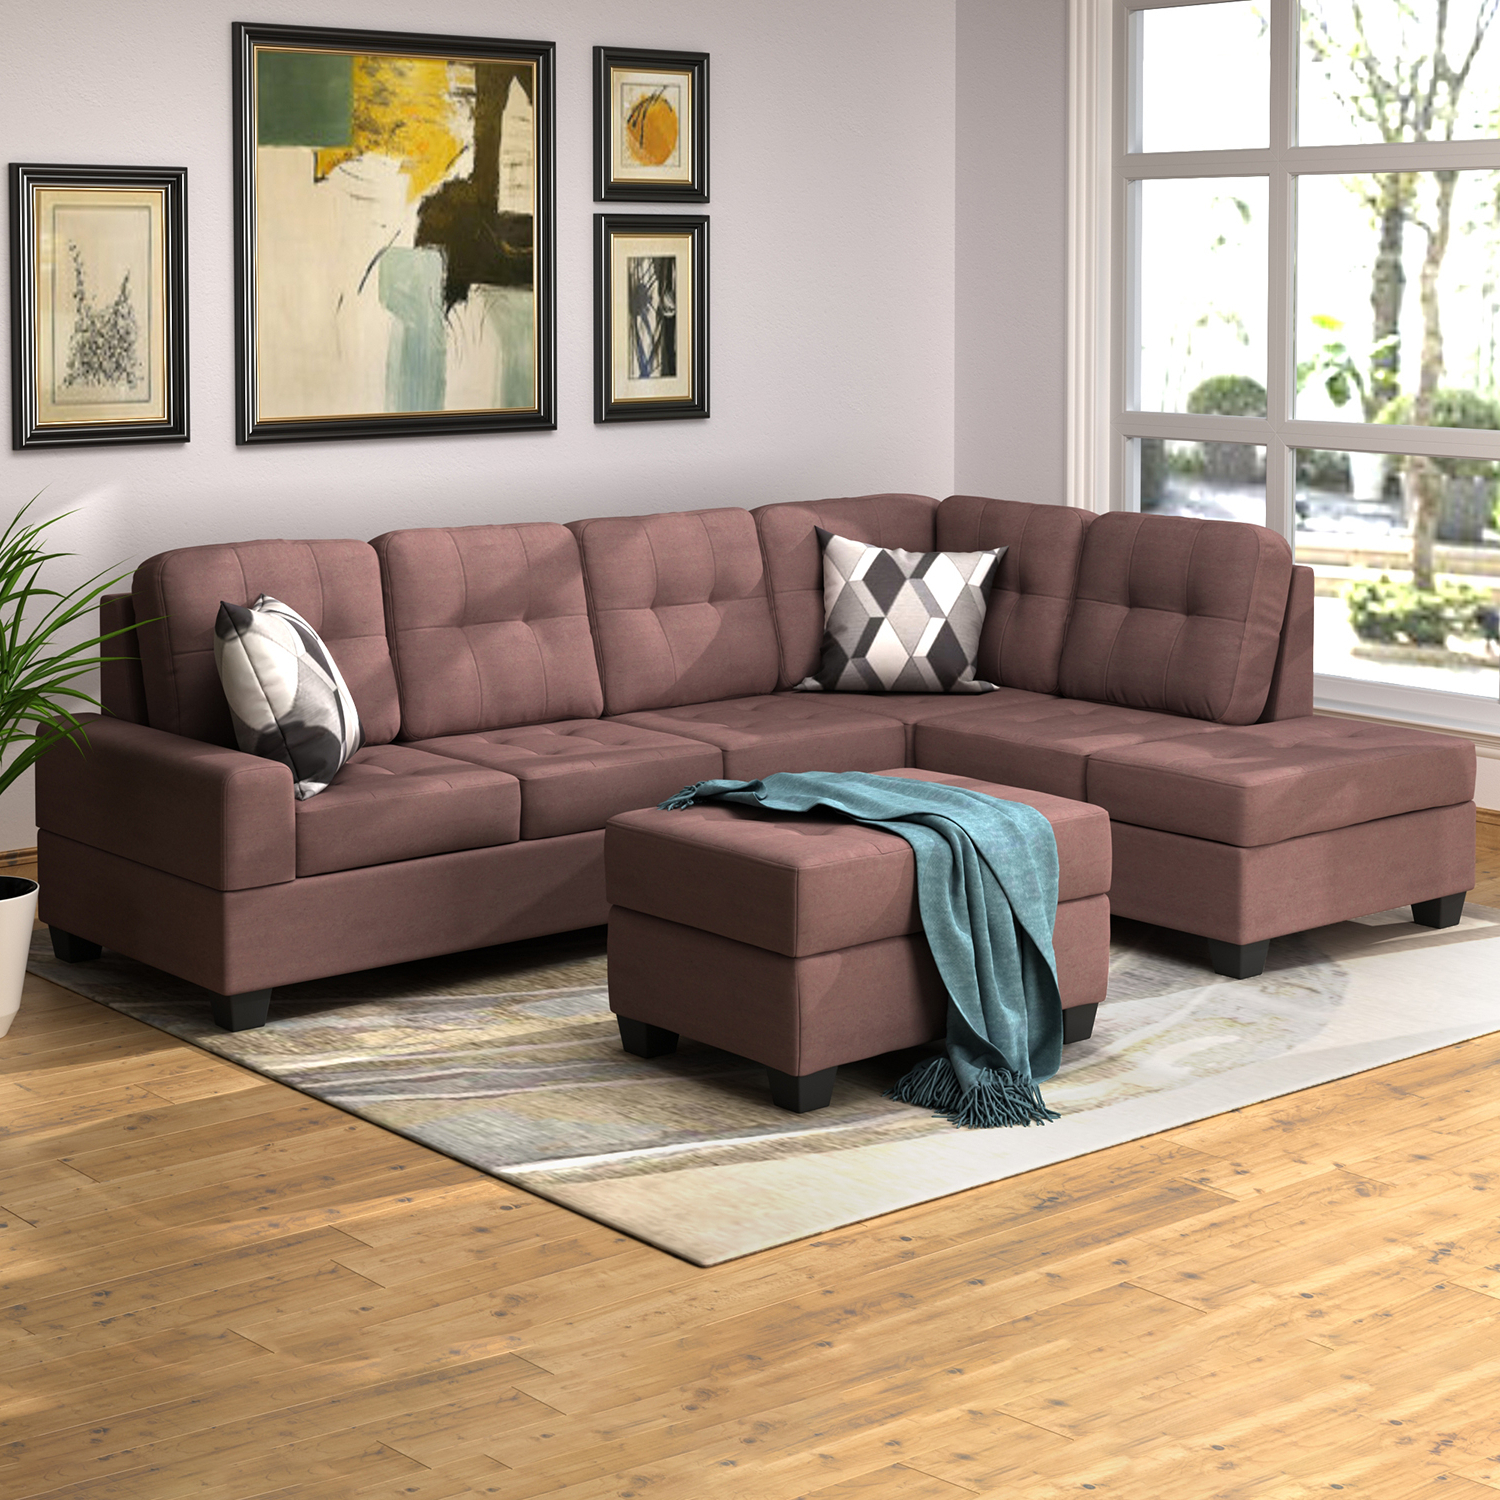 Latest Copenhagen Reversible Small Space Sectional Sofas With Storage With Regard To 3 Piece Sectional Sofa Microfiber With Reversible Chaise (View 9 of 25)